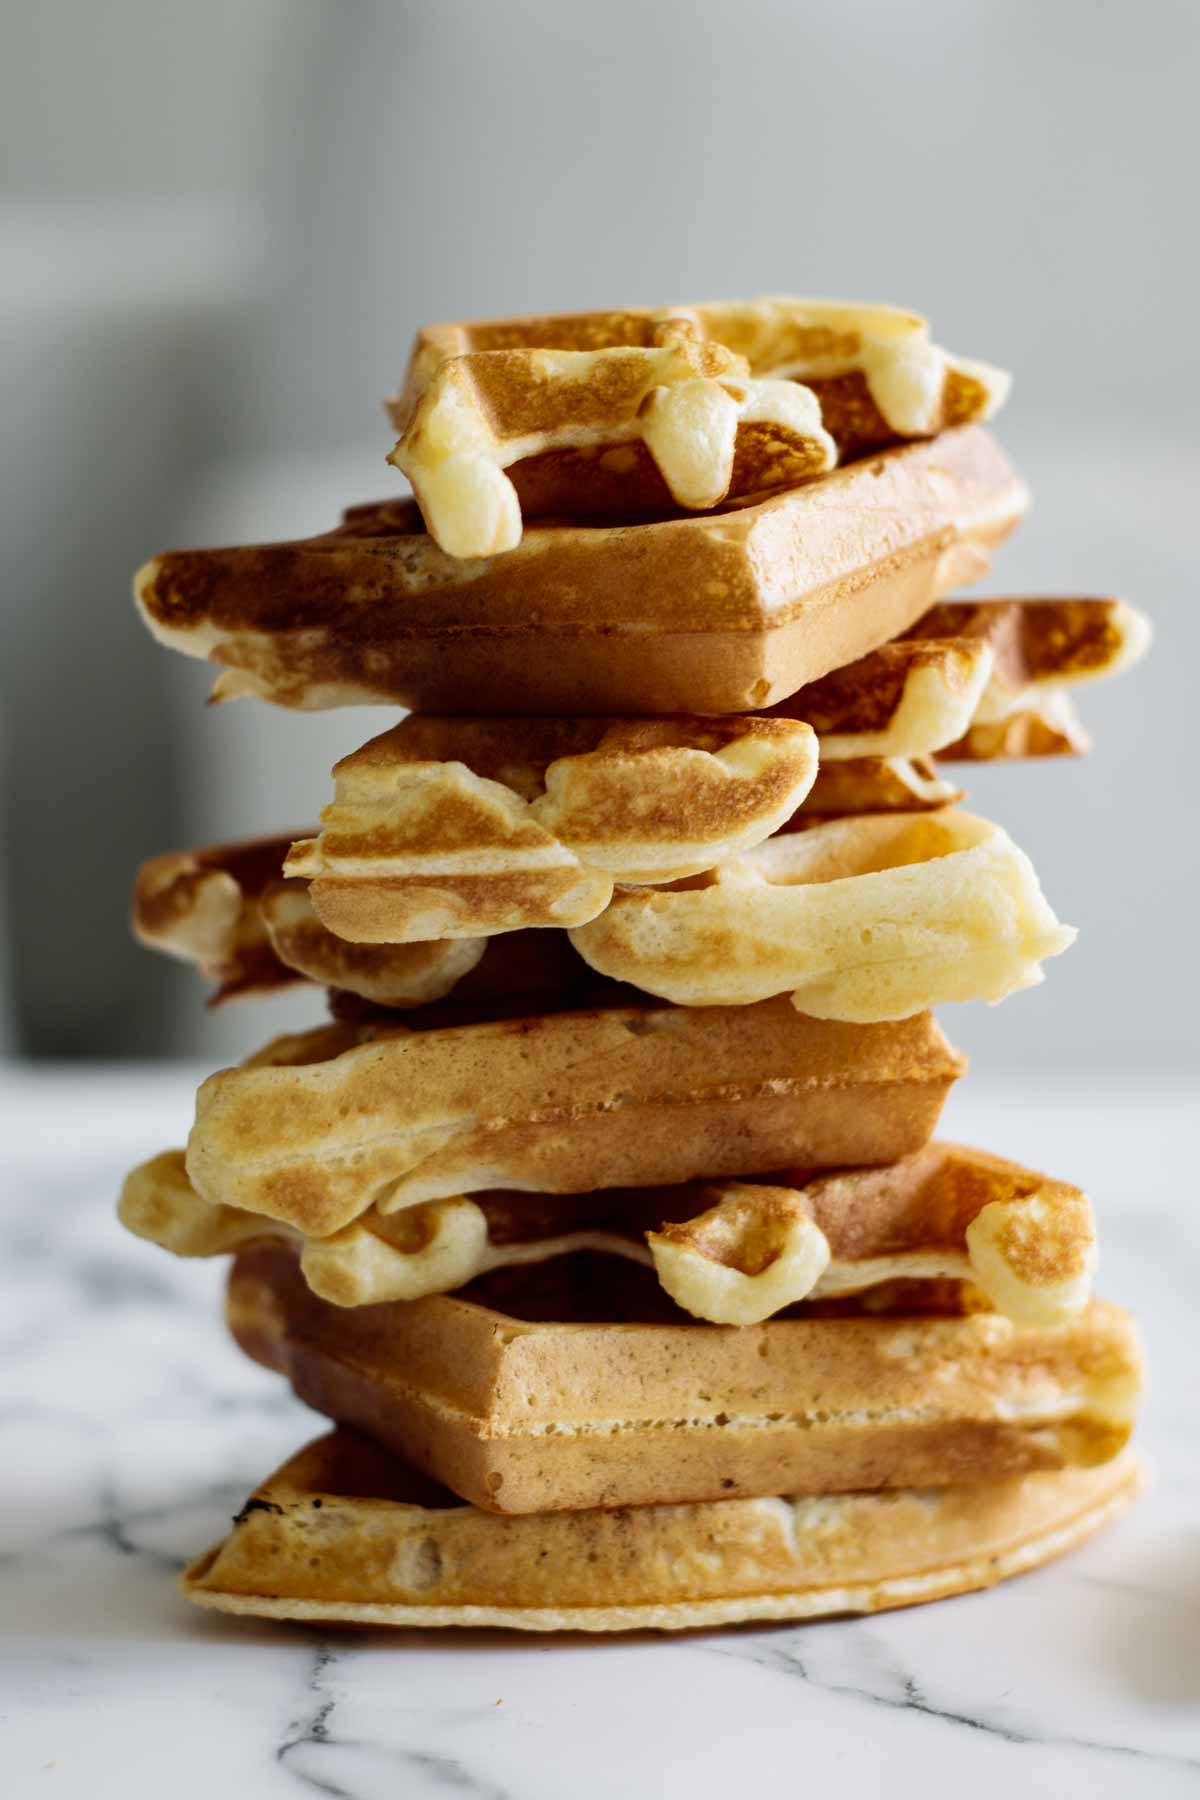 A stack of american waffles.